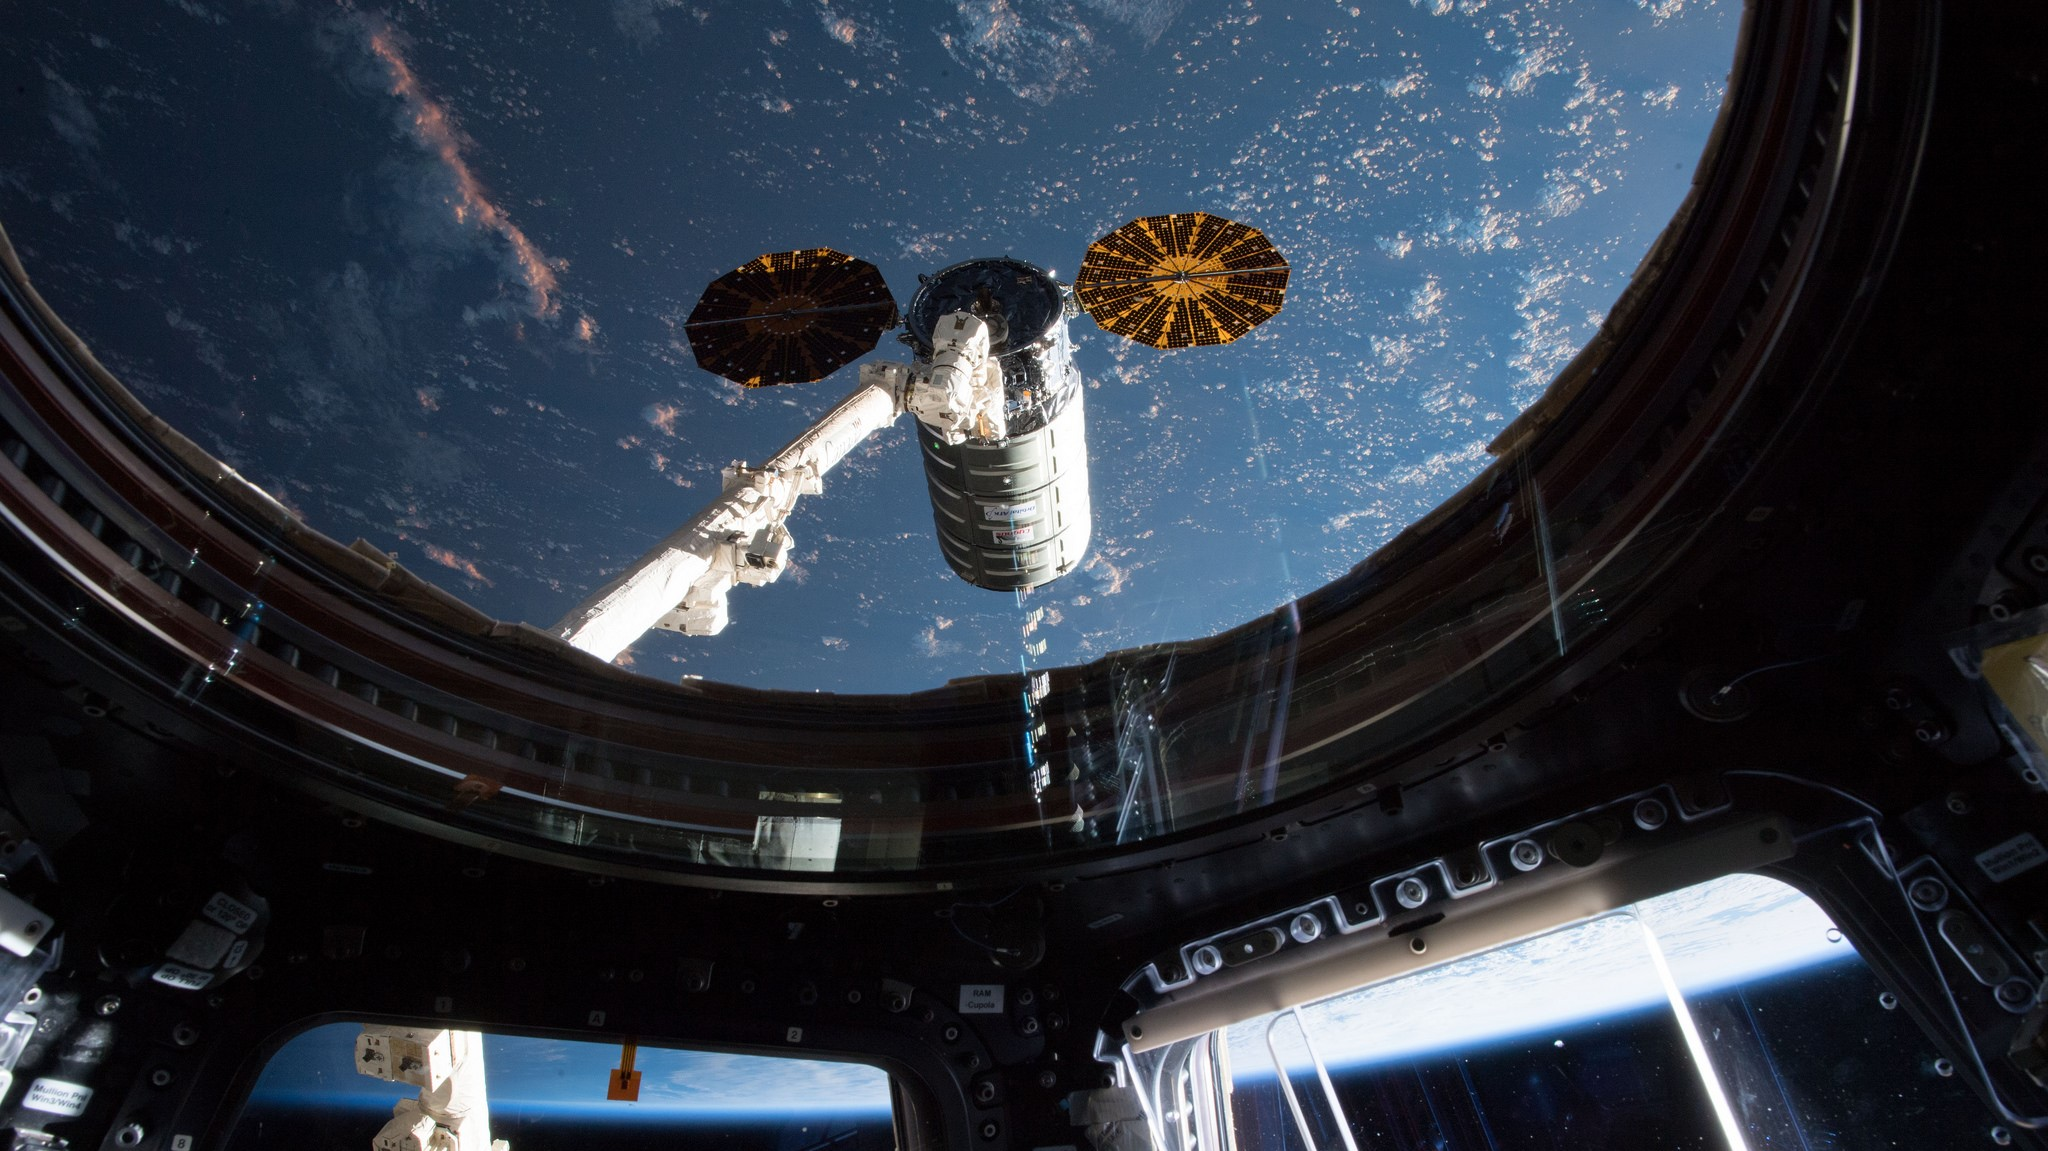 OA-9 Cygnus as seen during its arrival at the ISS on May 24, 2018. Credit: NASA